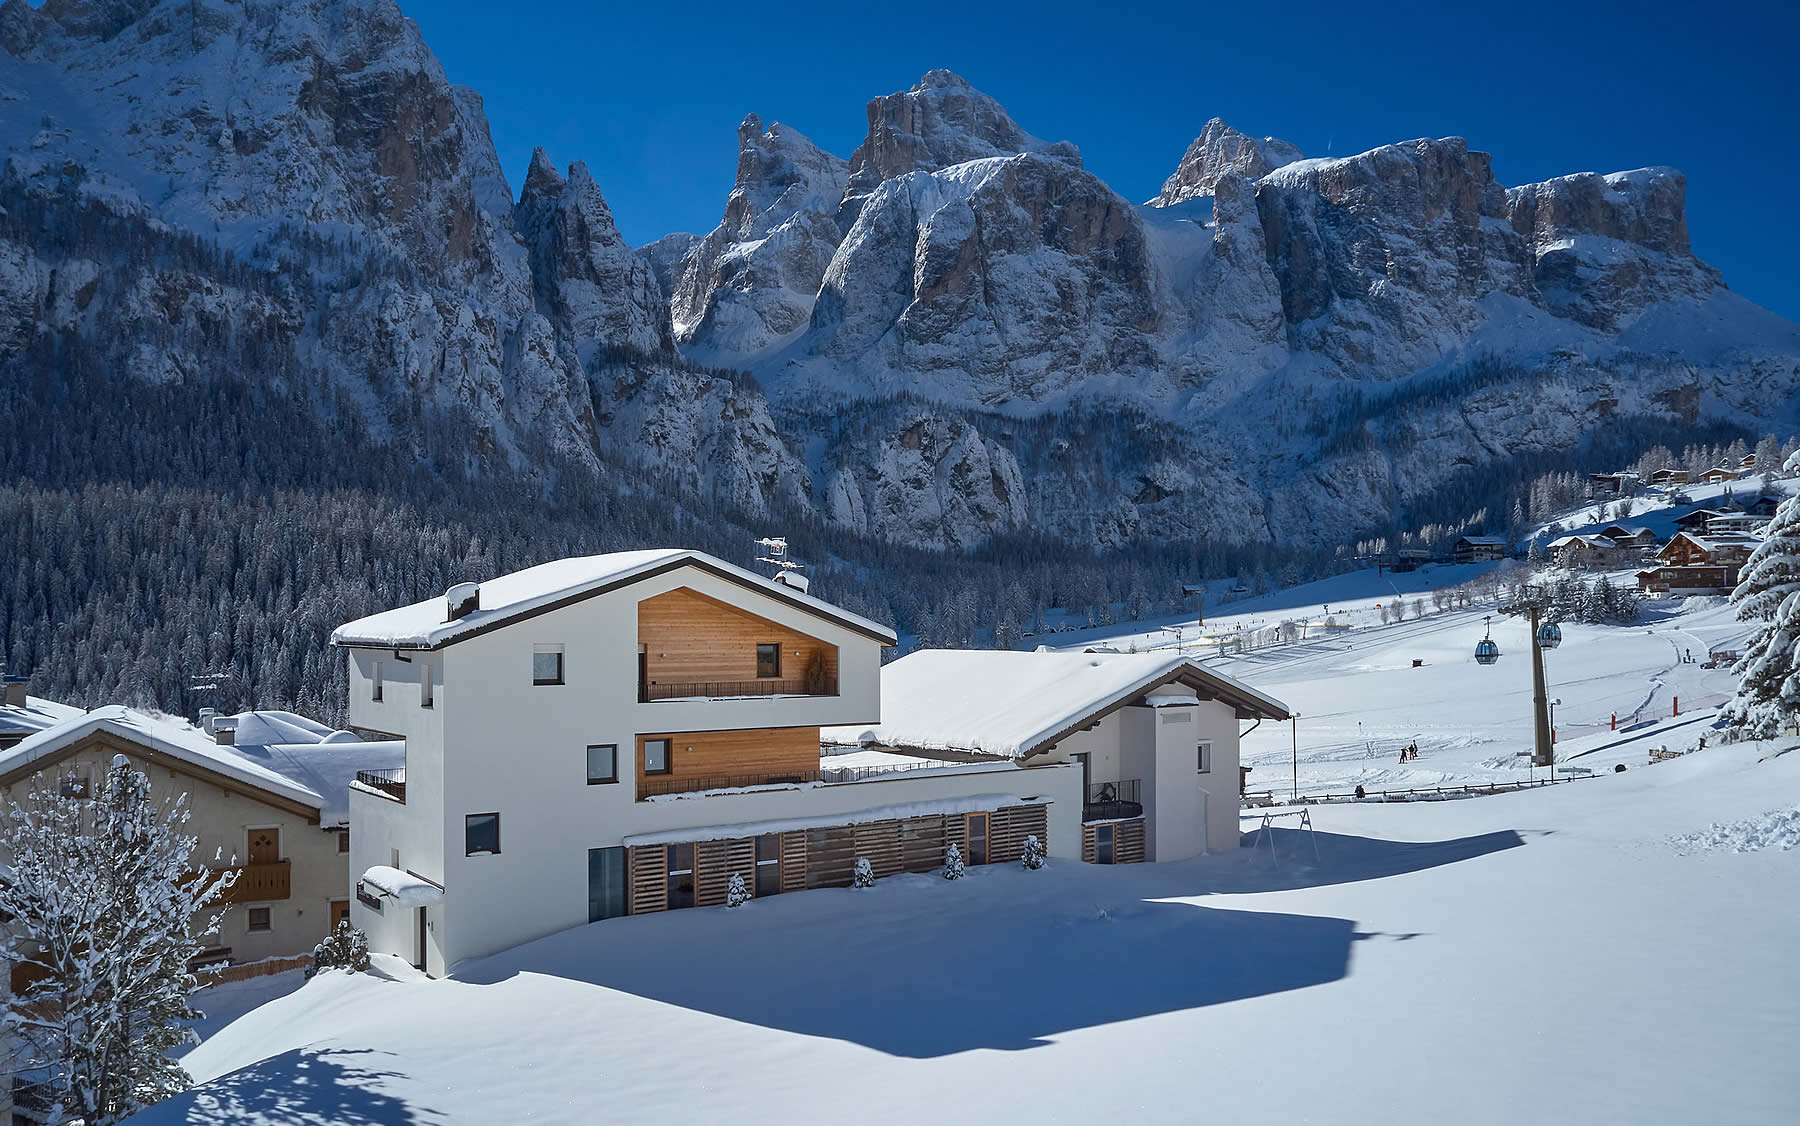 Winter holiday in Alta Badia